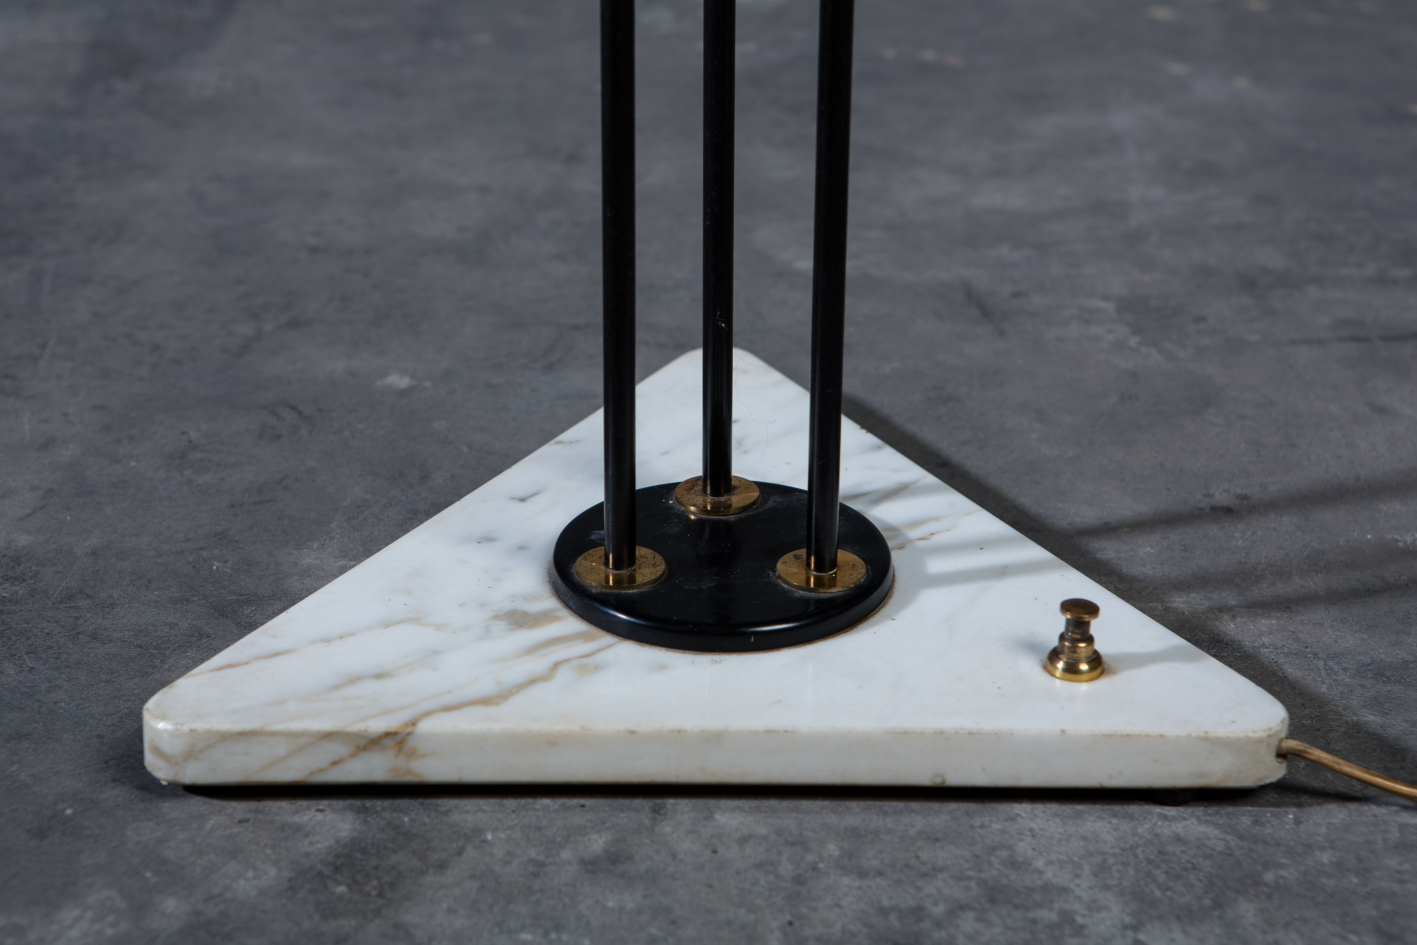 Three arms Floor Lamp made by marble, brass and glass - Stilnovo Italy 1950s - Marble base detail